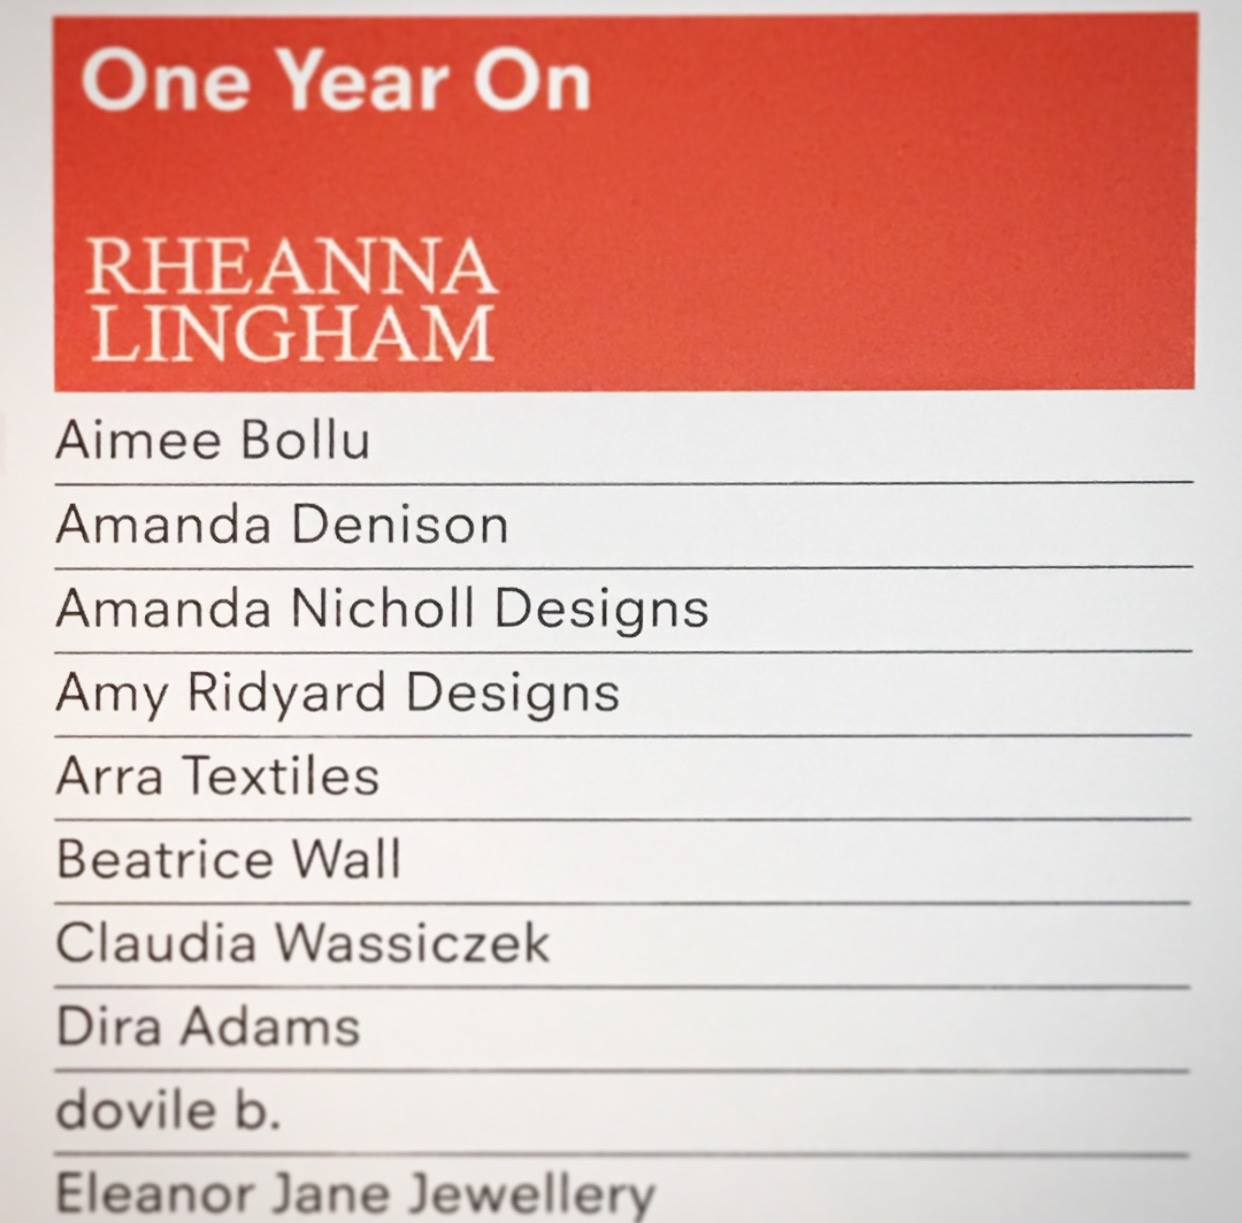 So many talented designers at One Year On 2016